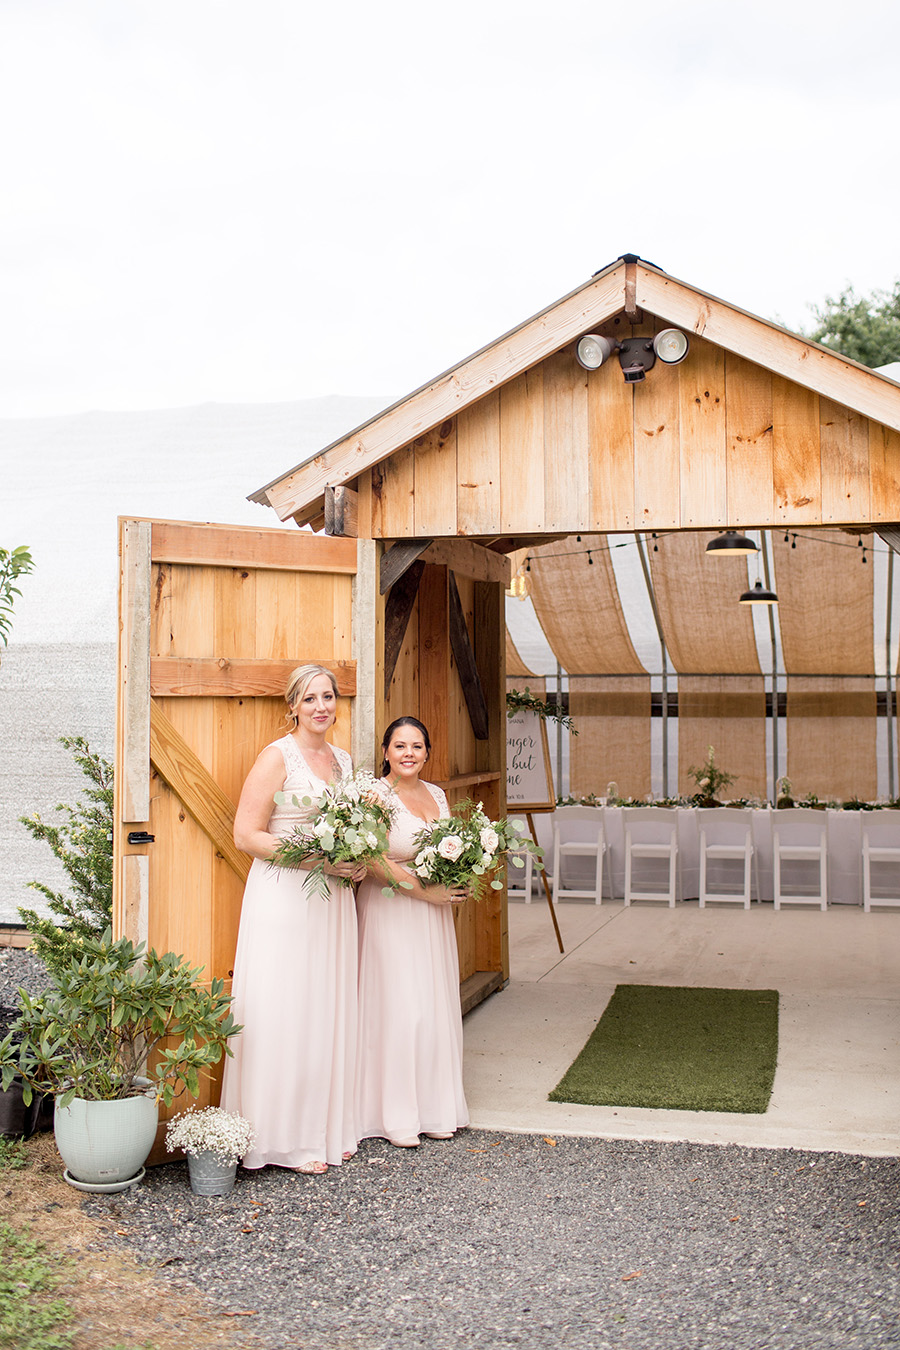 bridesmaids welcome wedding guests into the greenhouse